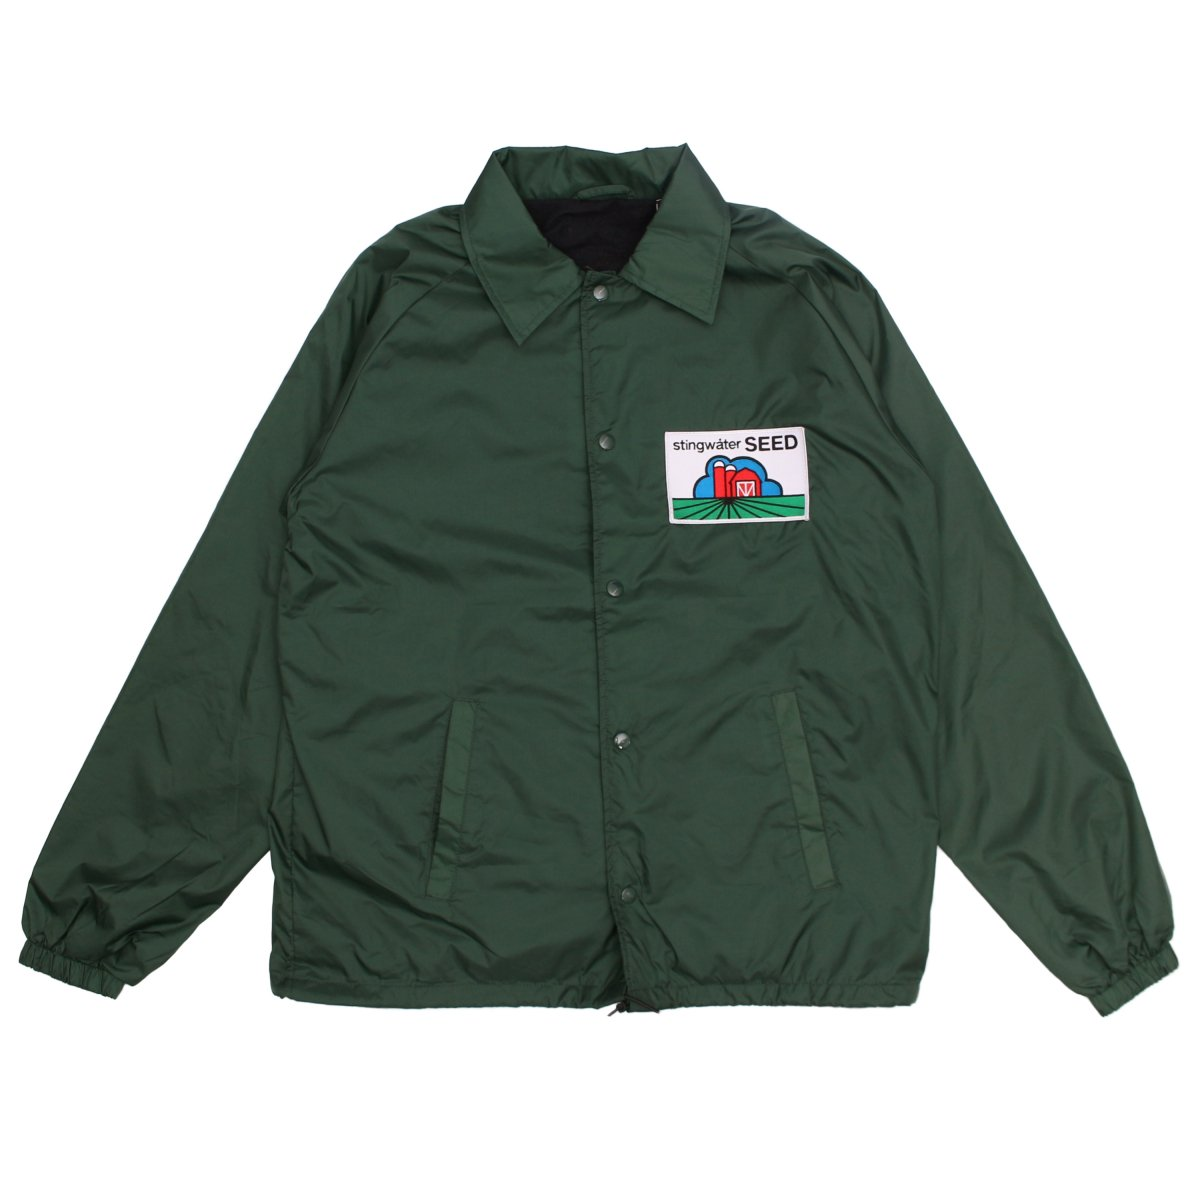 Stingwater Seed Coaches Jacket (embroidered patch)